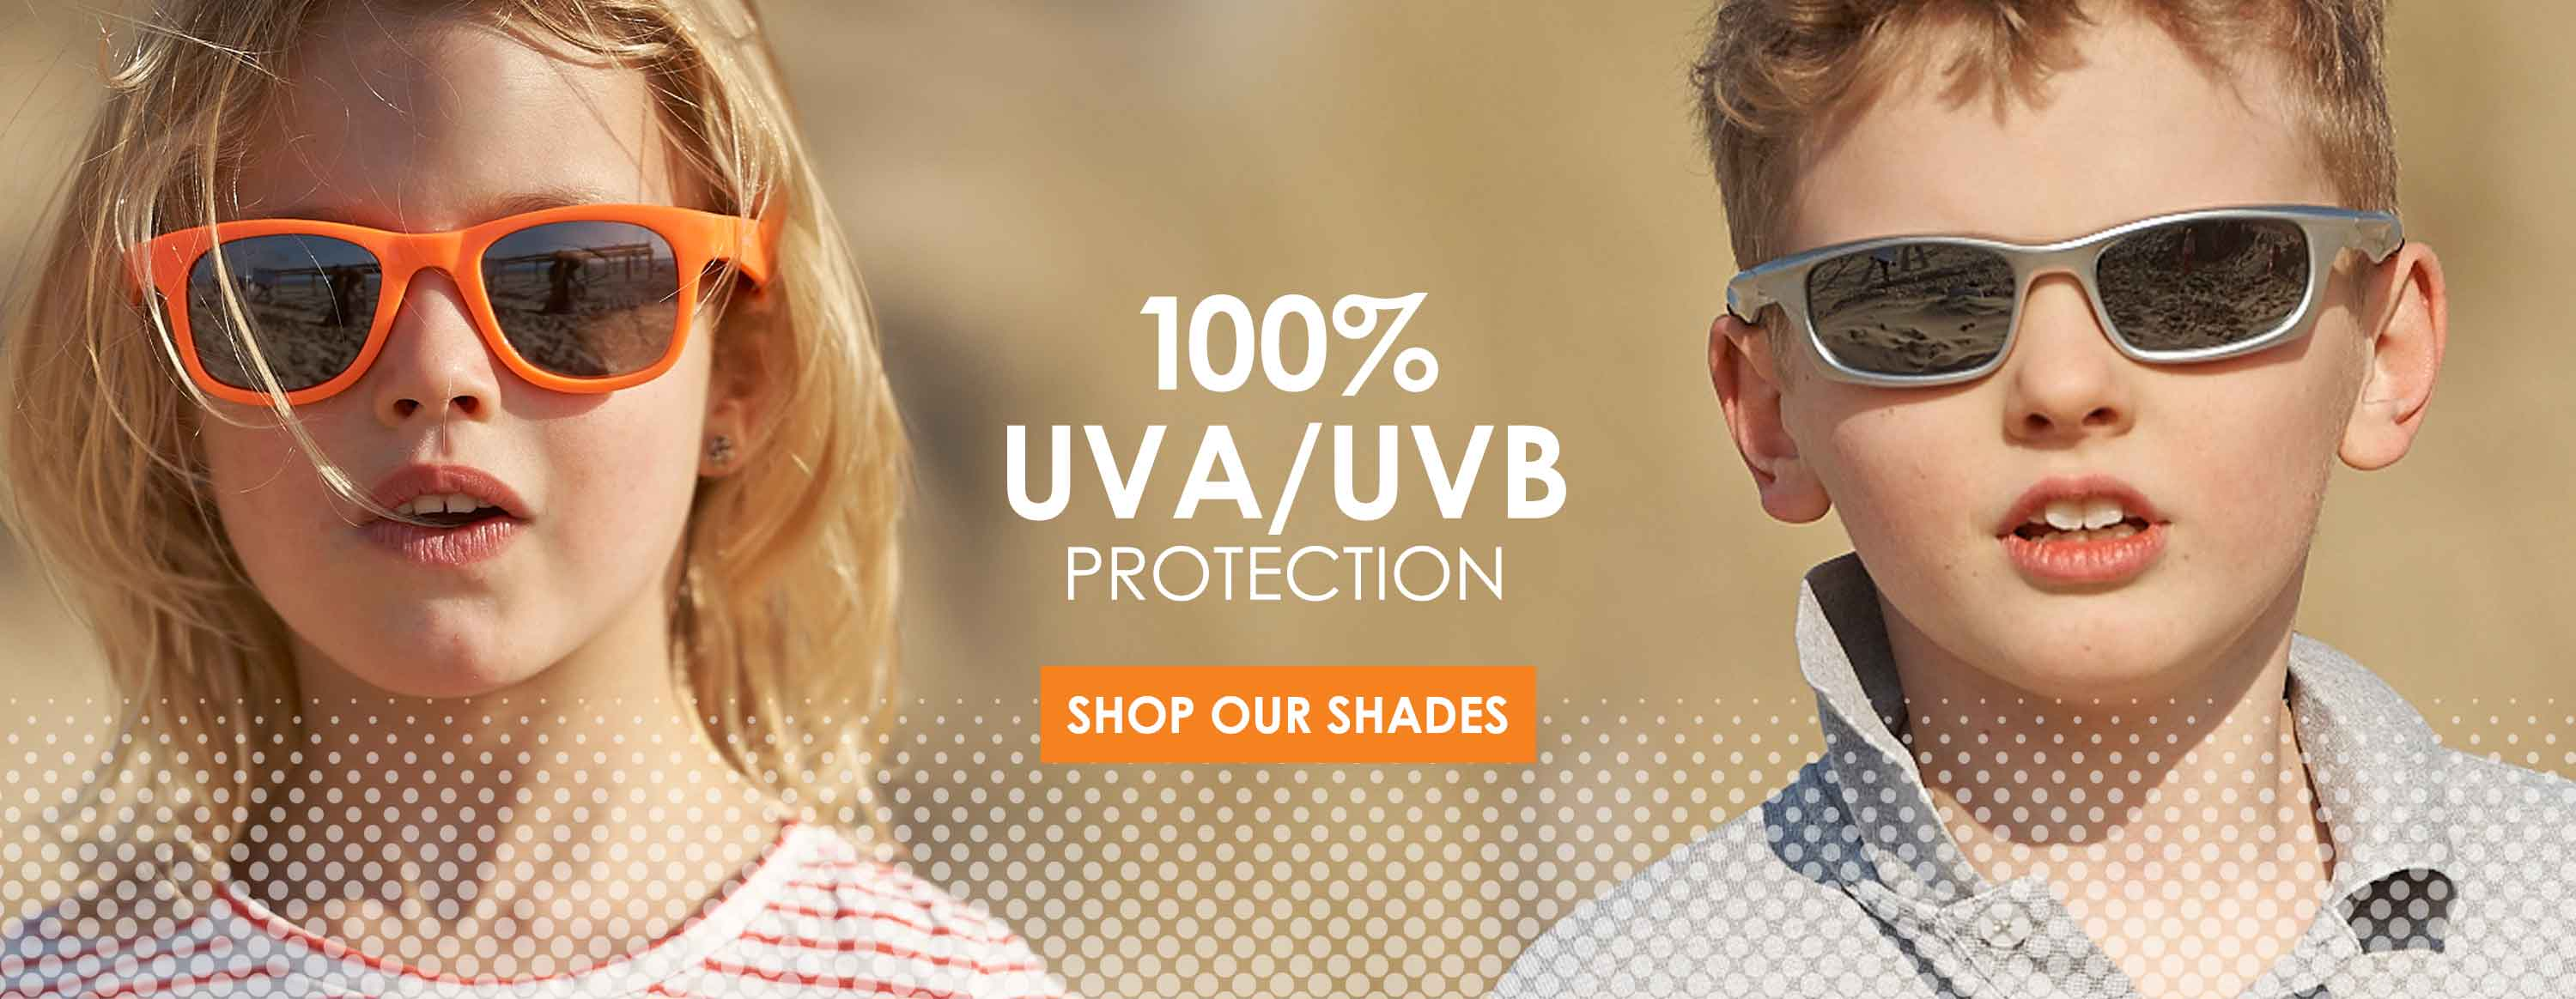 REAL_WEB_BANNER_UV_W_BANNER